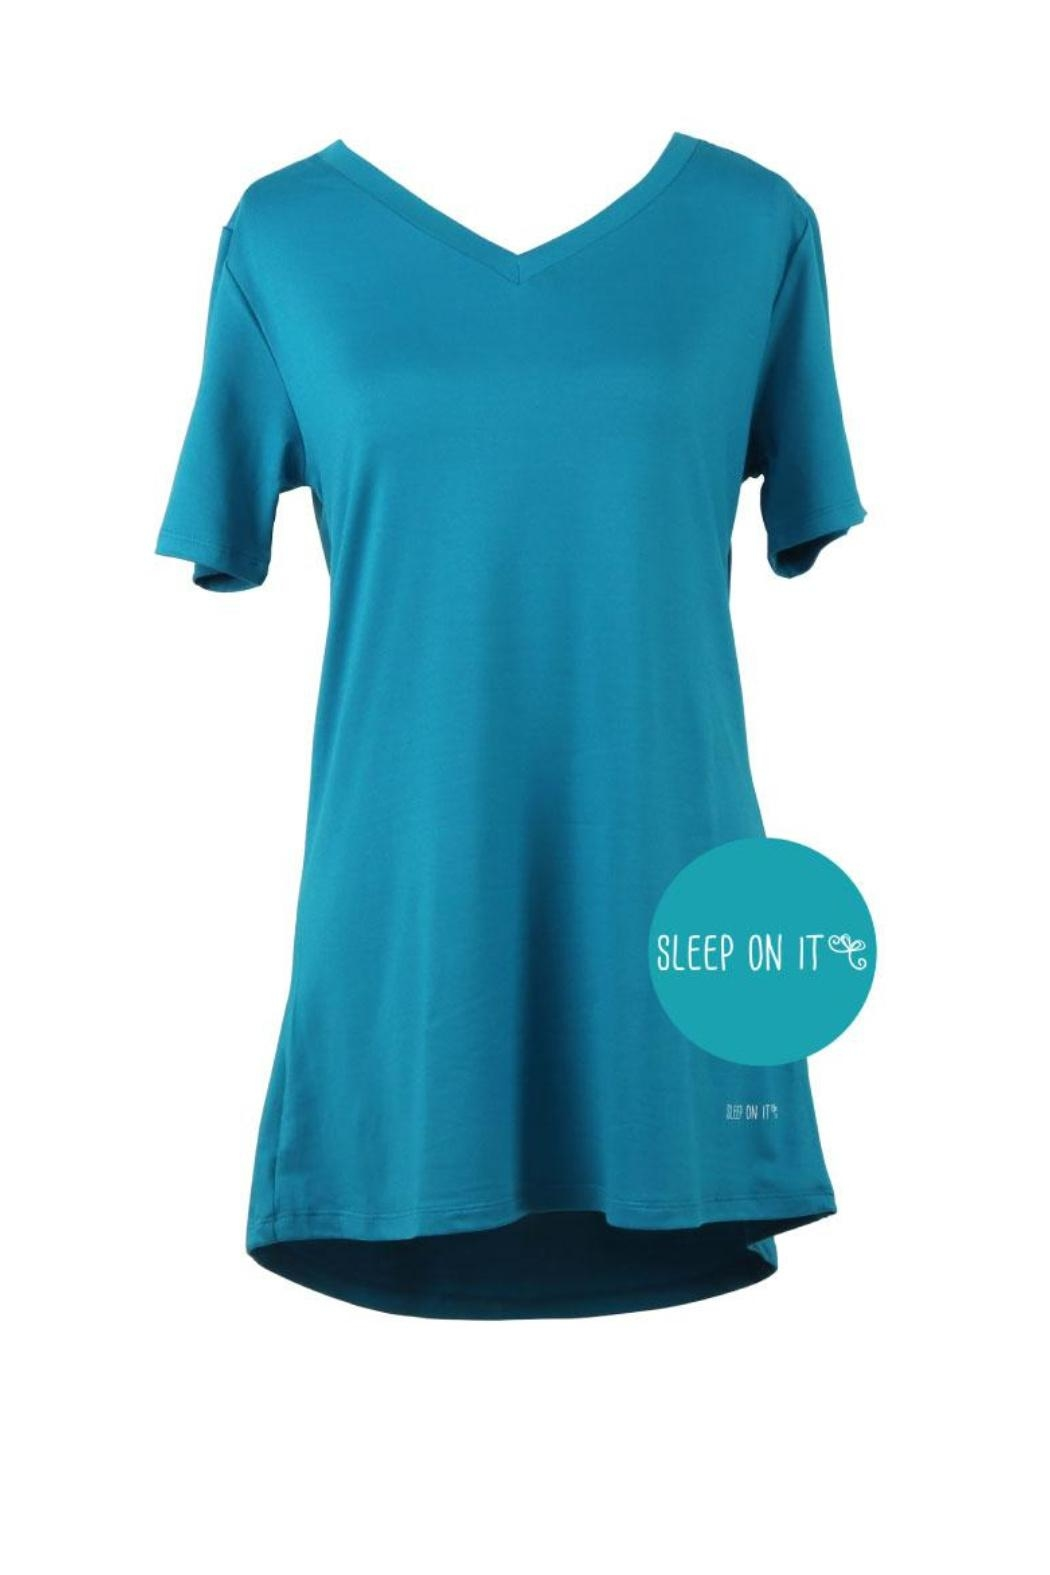 Hello Mello Hm Dream Tee - Teal - Front Cropped Image